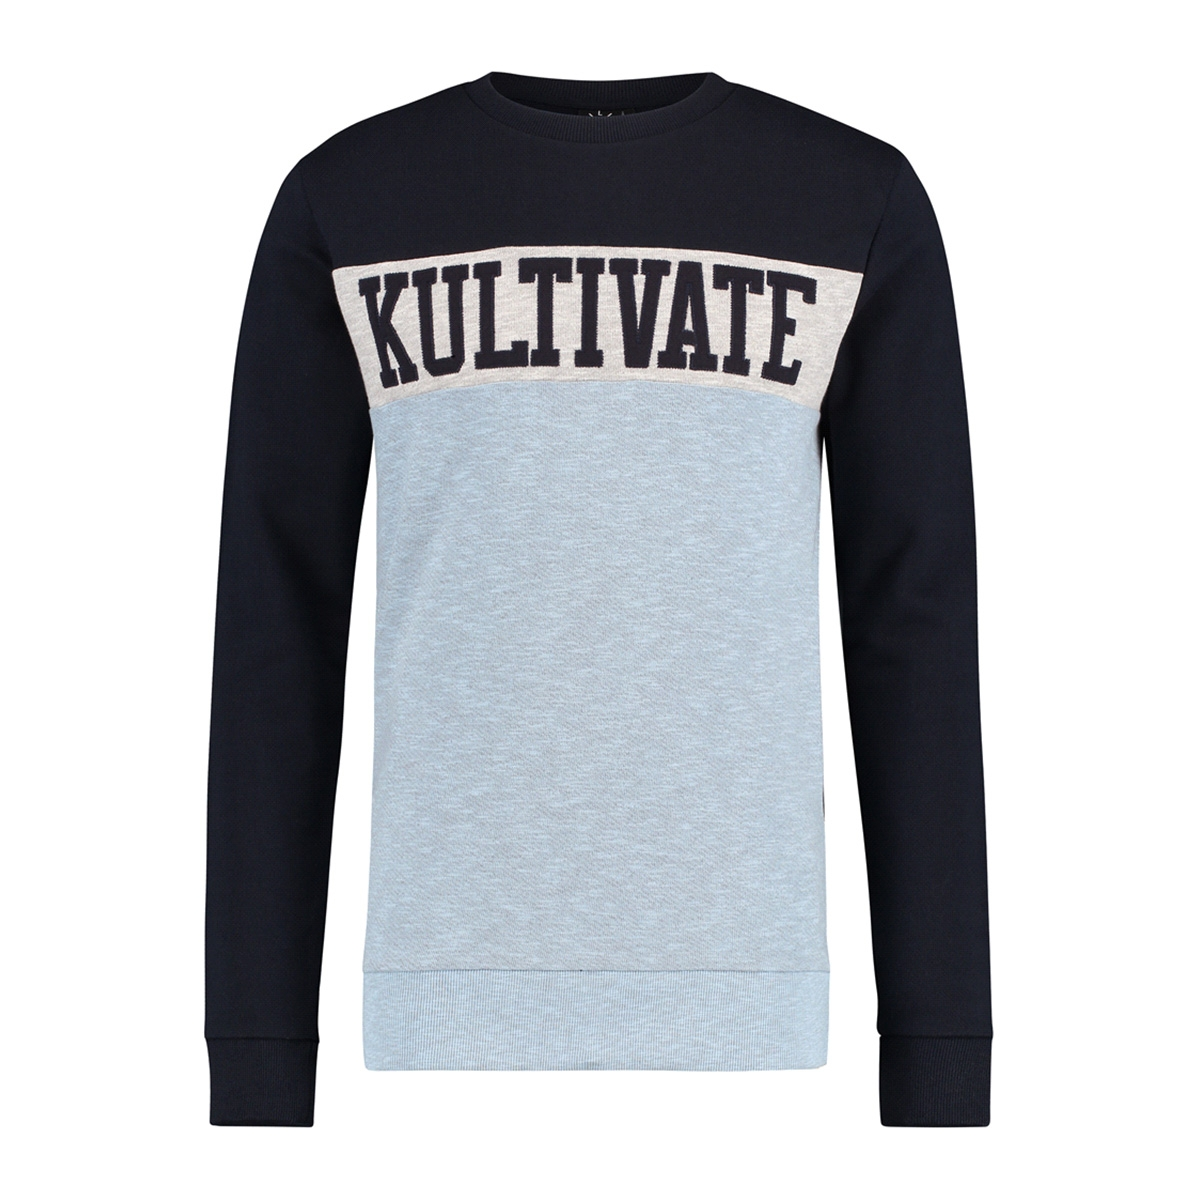 1901011001 kultivate sweater 323 electric mel